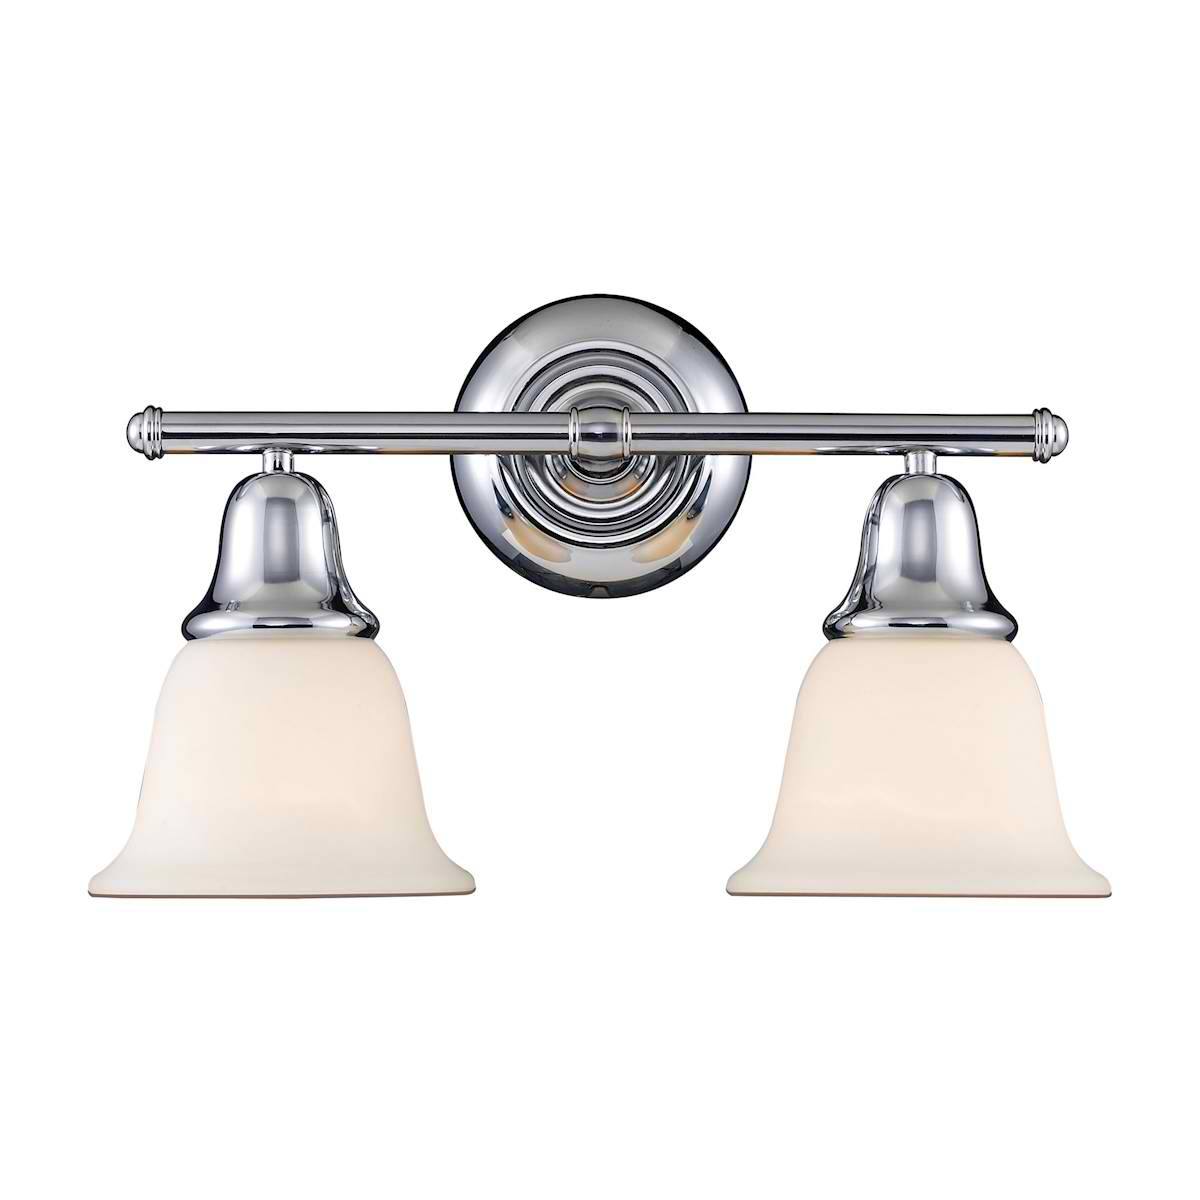 Berwick 2-Light Sconce in Polished Chrome